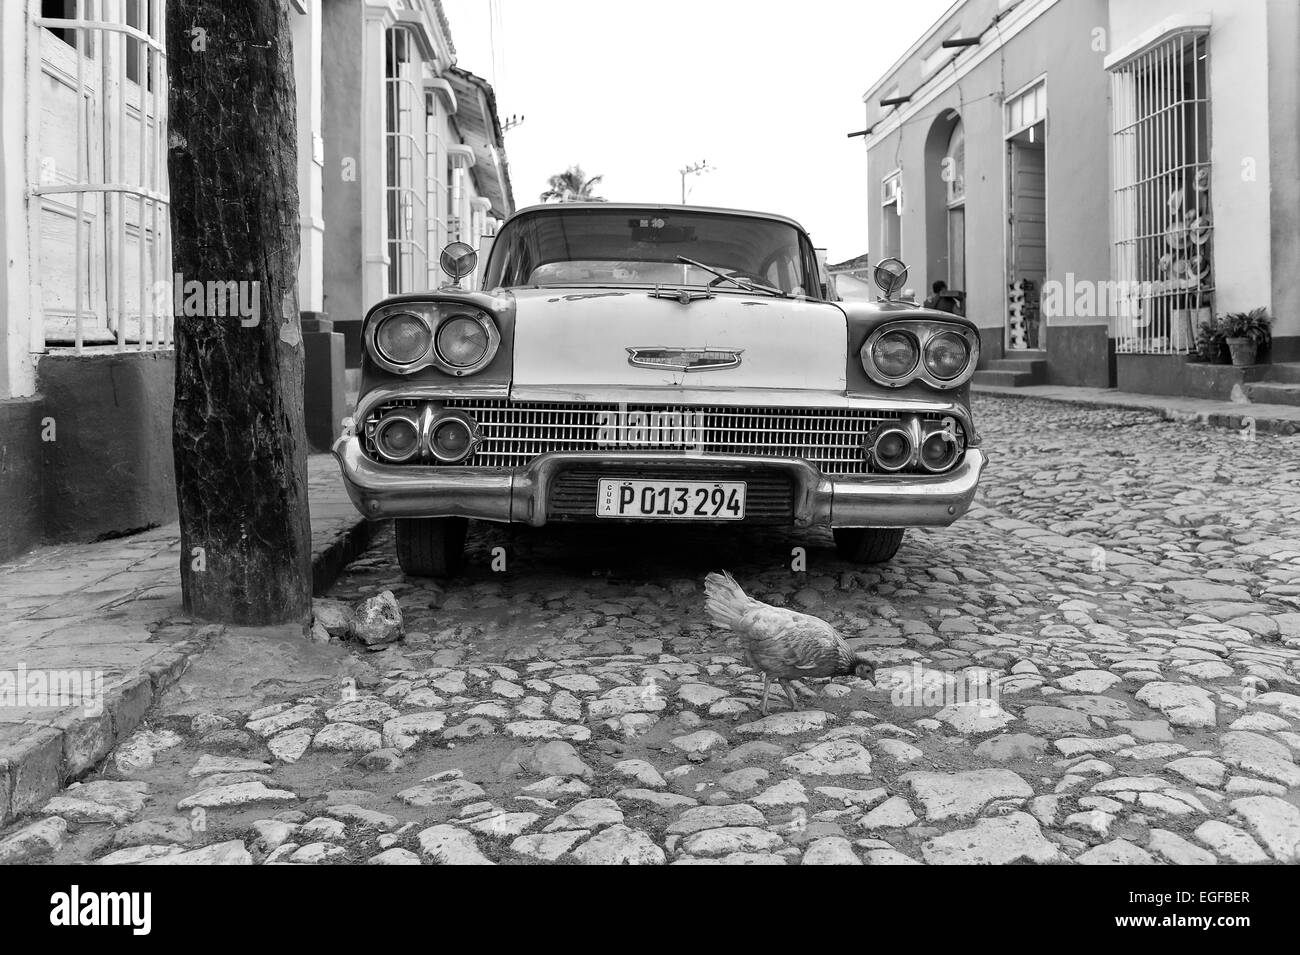 A Cuban classic car parked in a central Trinidad street and a chicken crossing the road. Cuba. - Stock Image